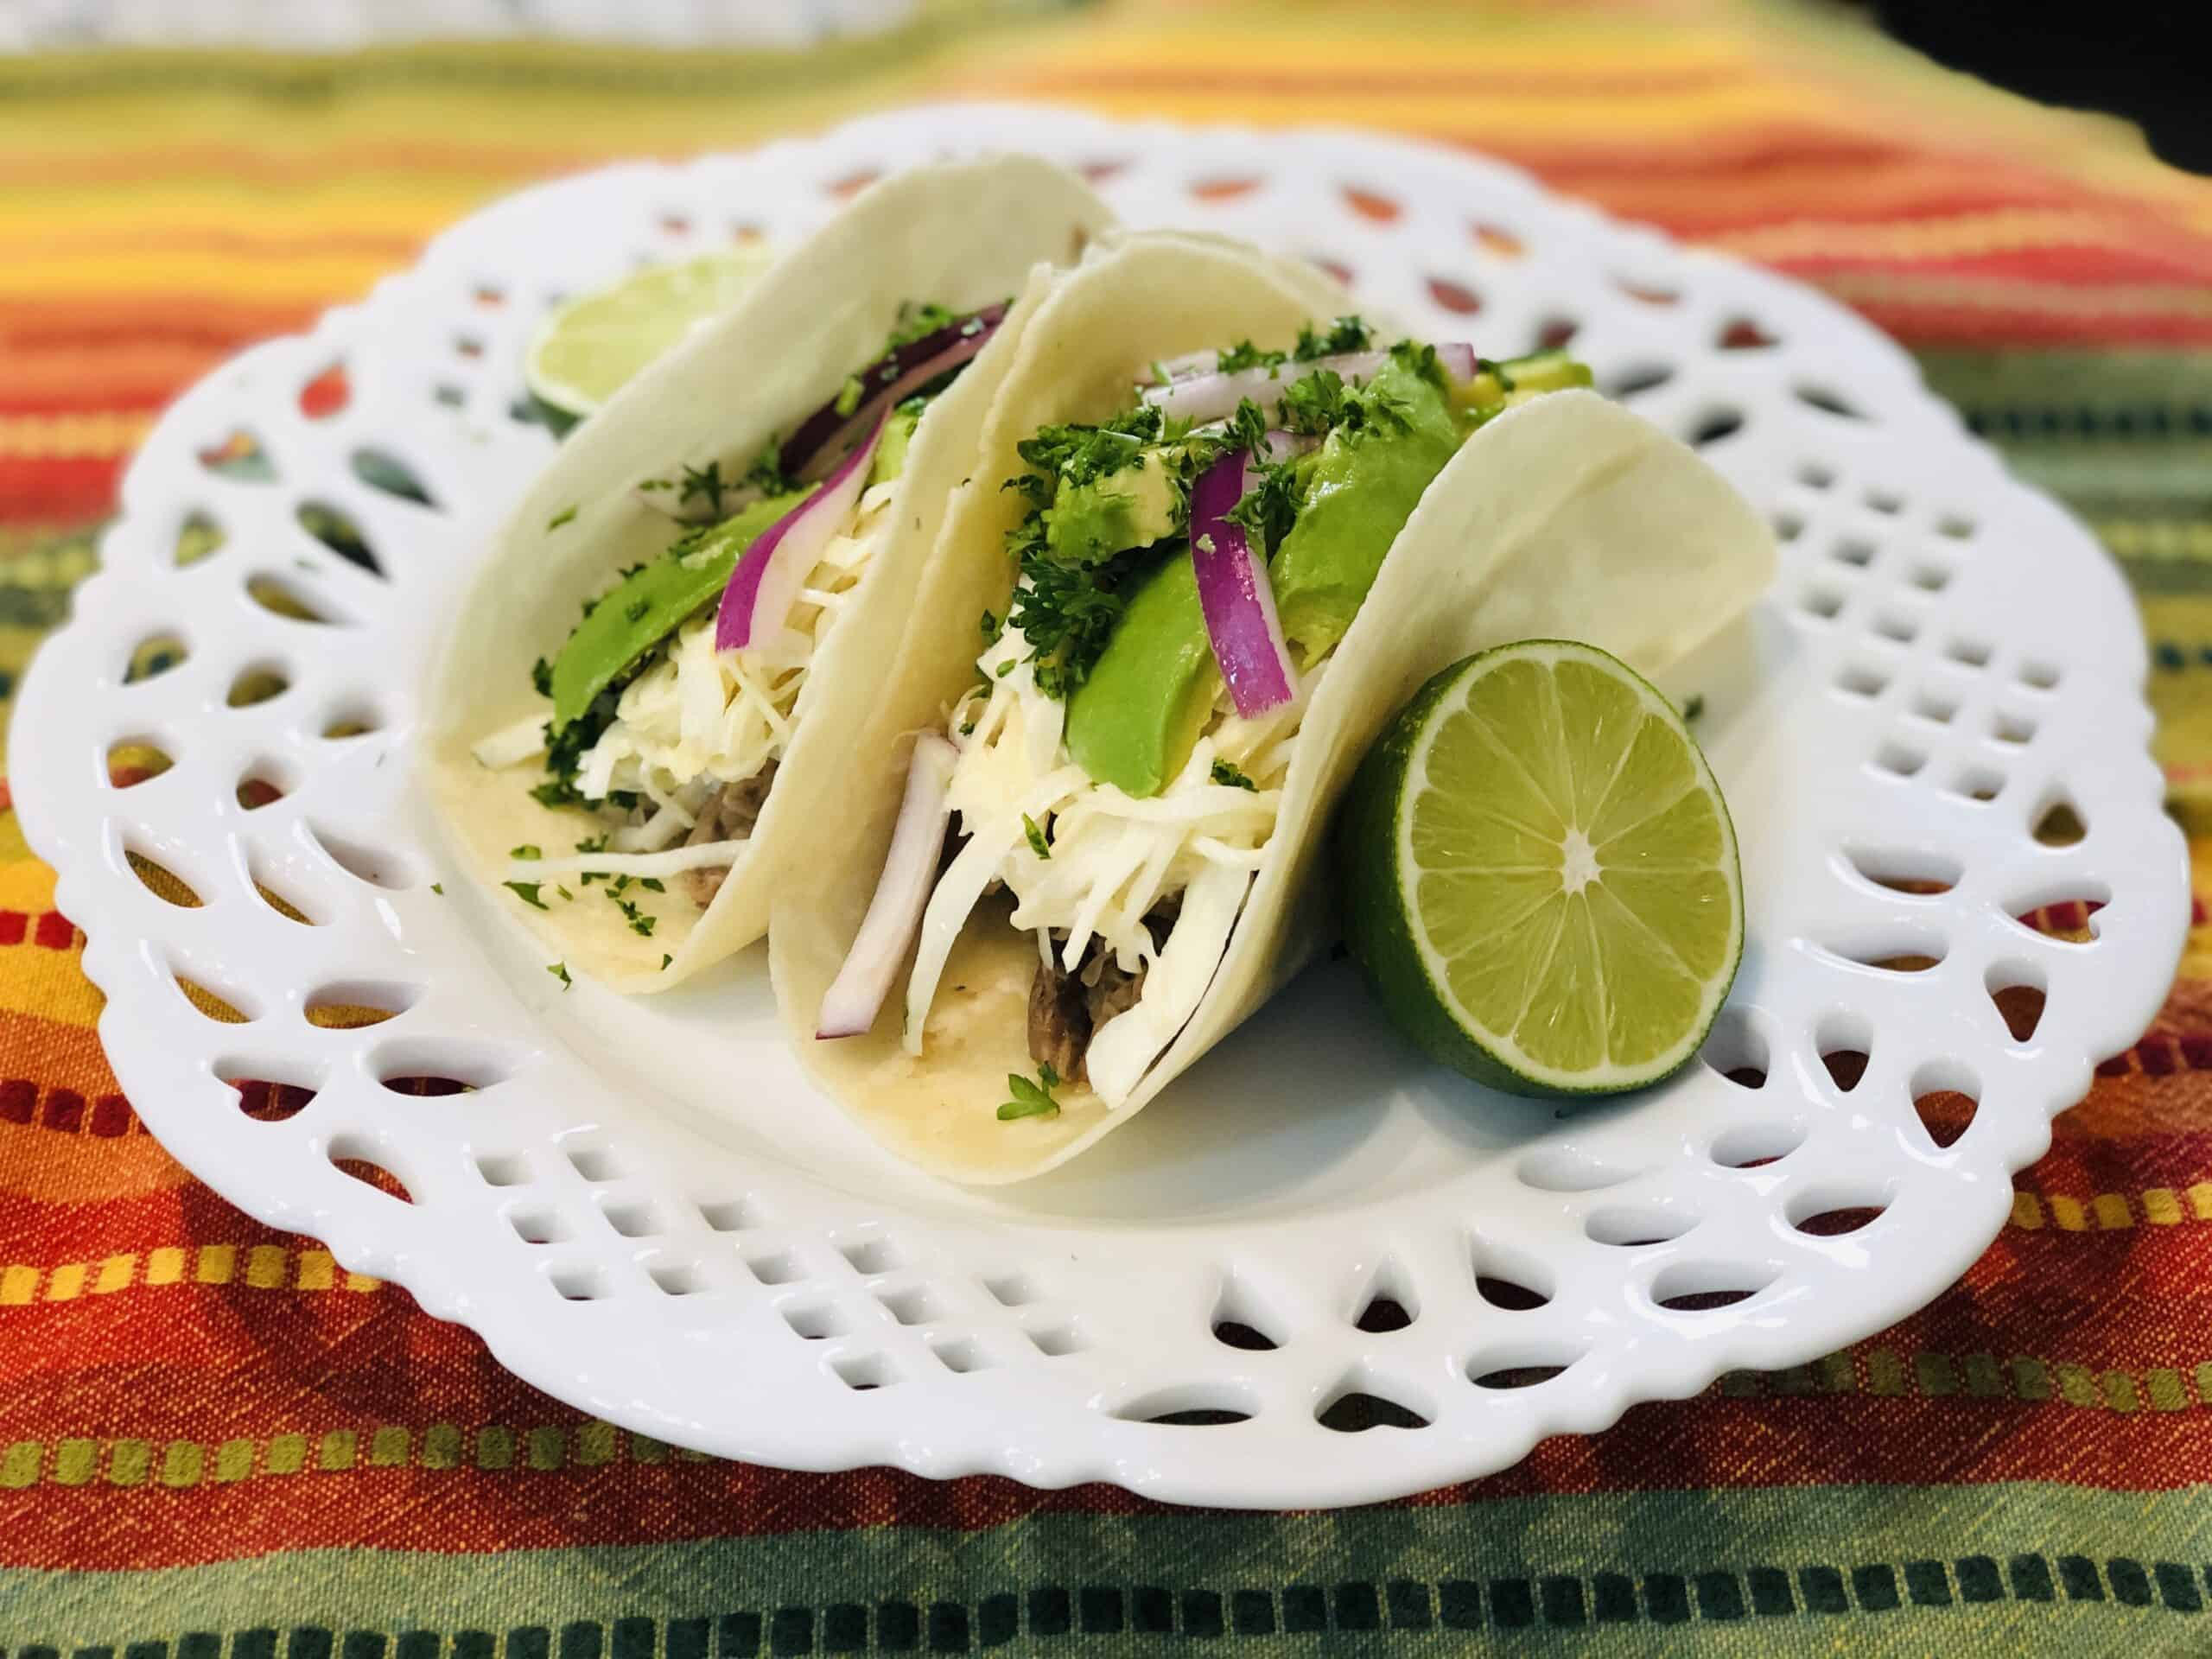 Jackfruit tacos on a plate